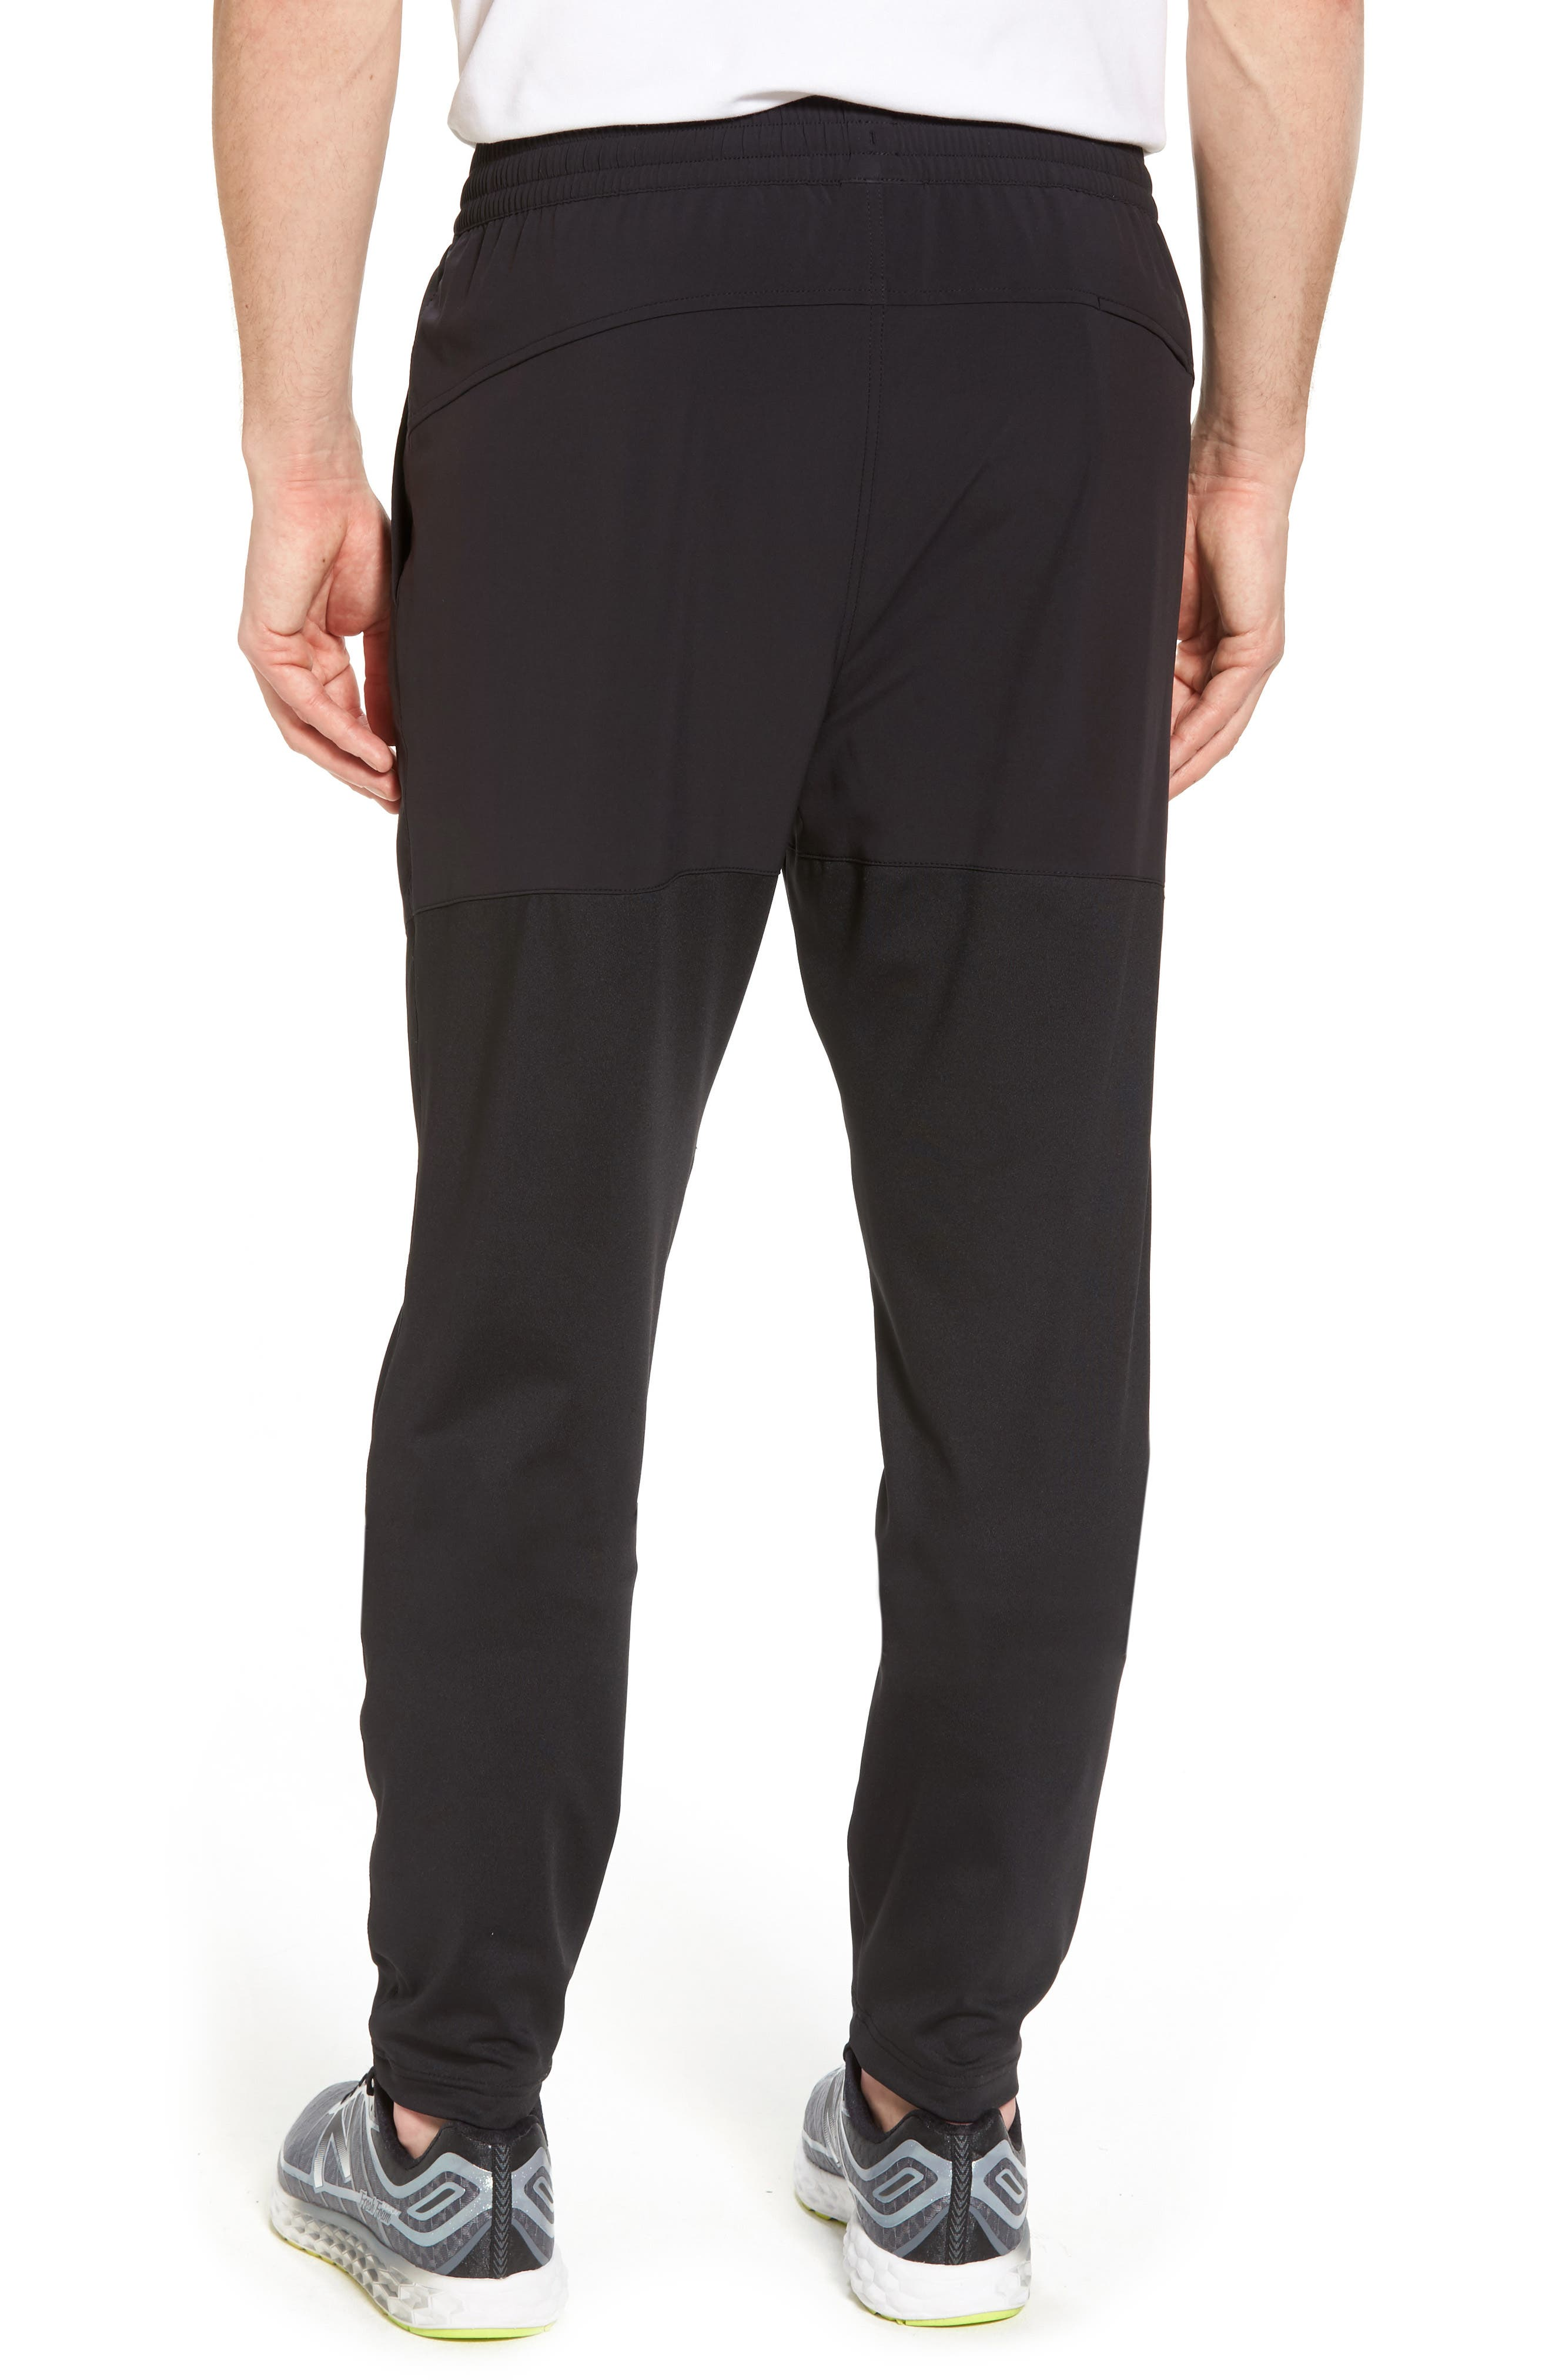 Graphite Tapered Athletic Pants,                             Alternate thumbnail 2, color,                             001